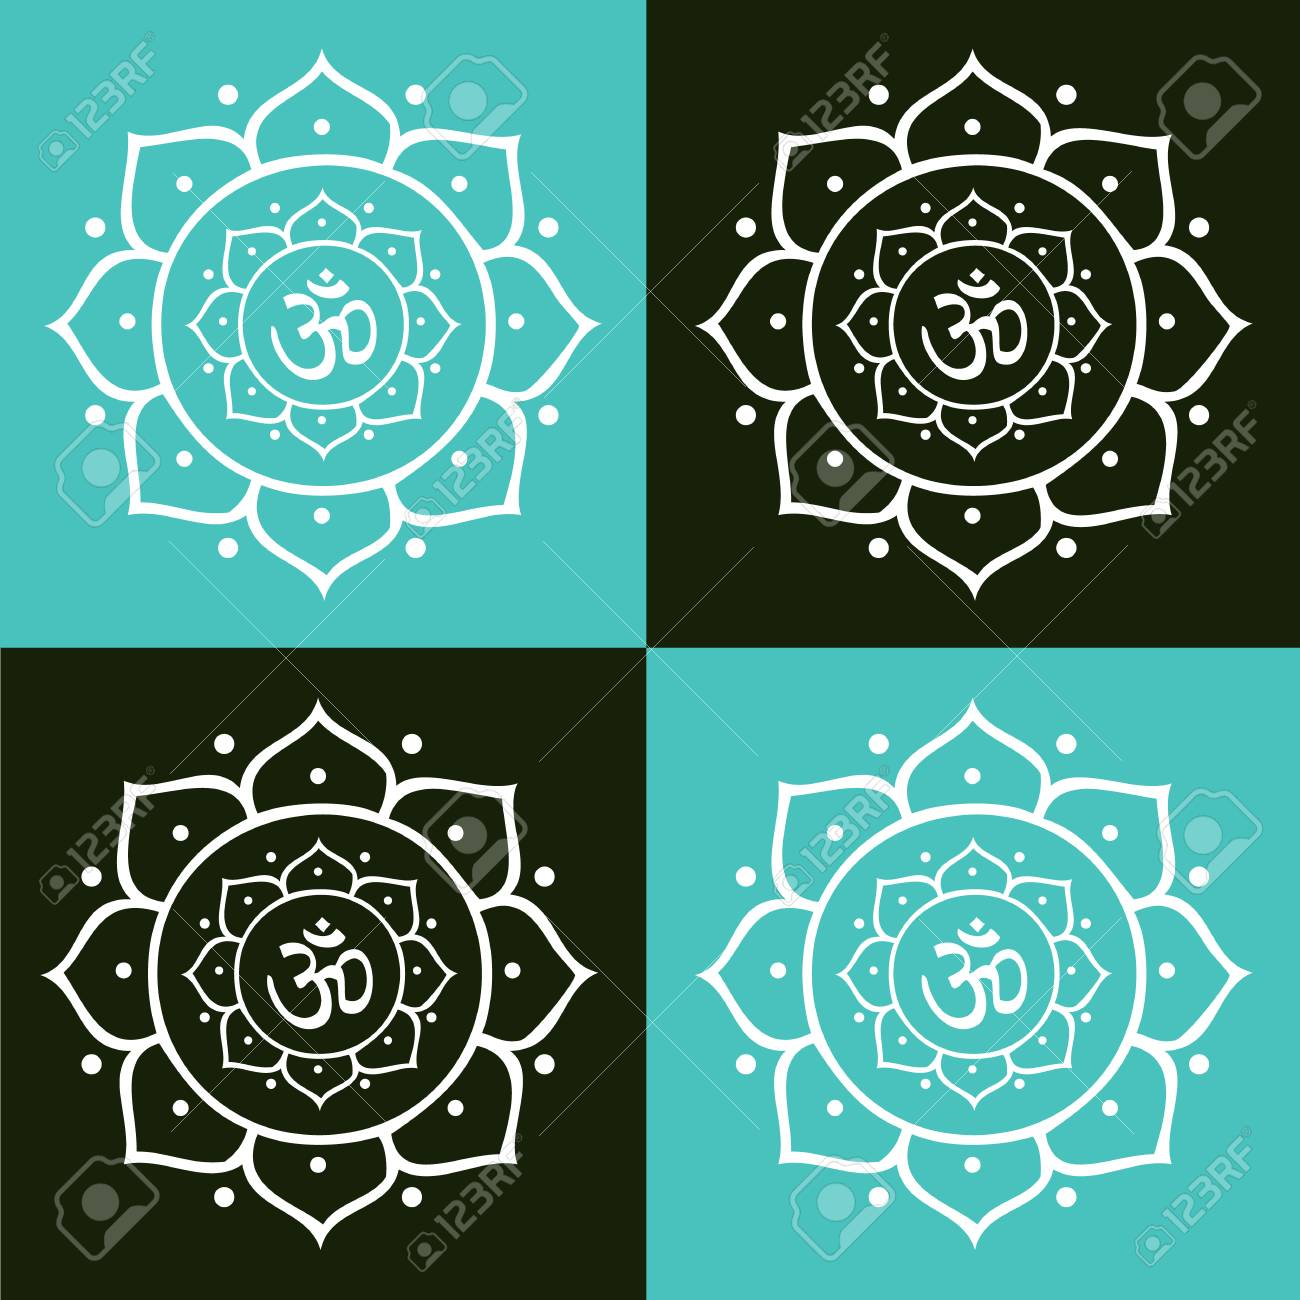 Vector om symbol and lotus flower mandala illustration royalty free vector vector om symbol and lotus flower mandala illustration mightylinksfo